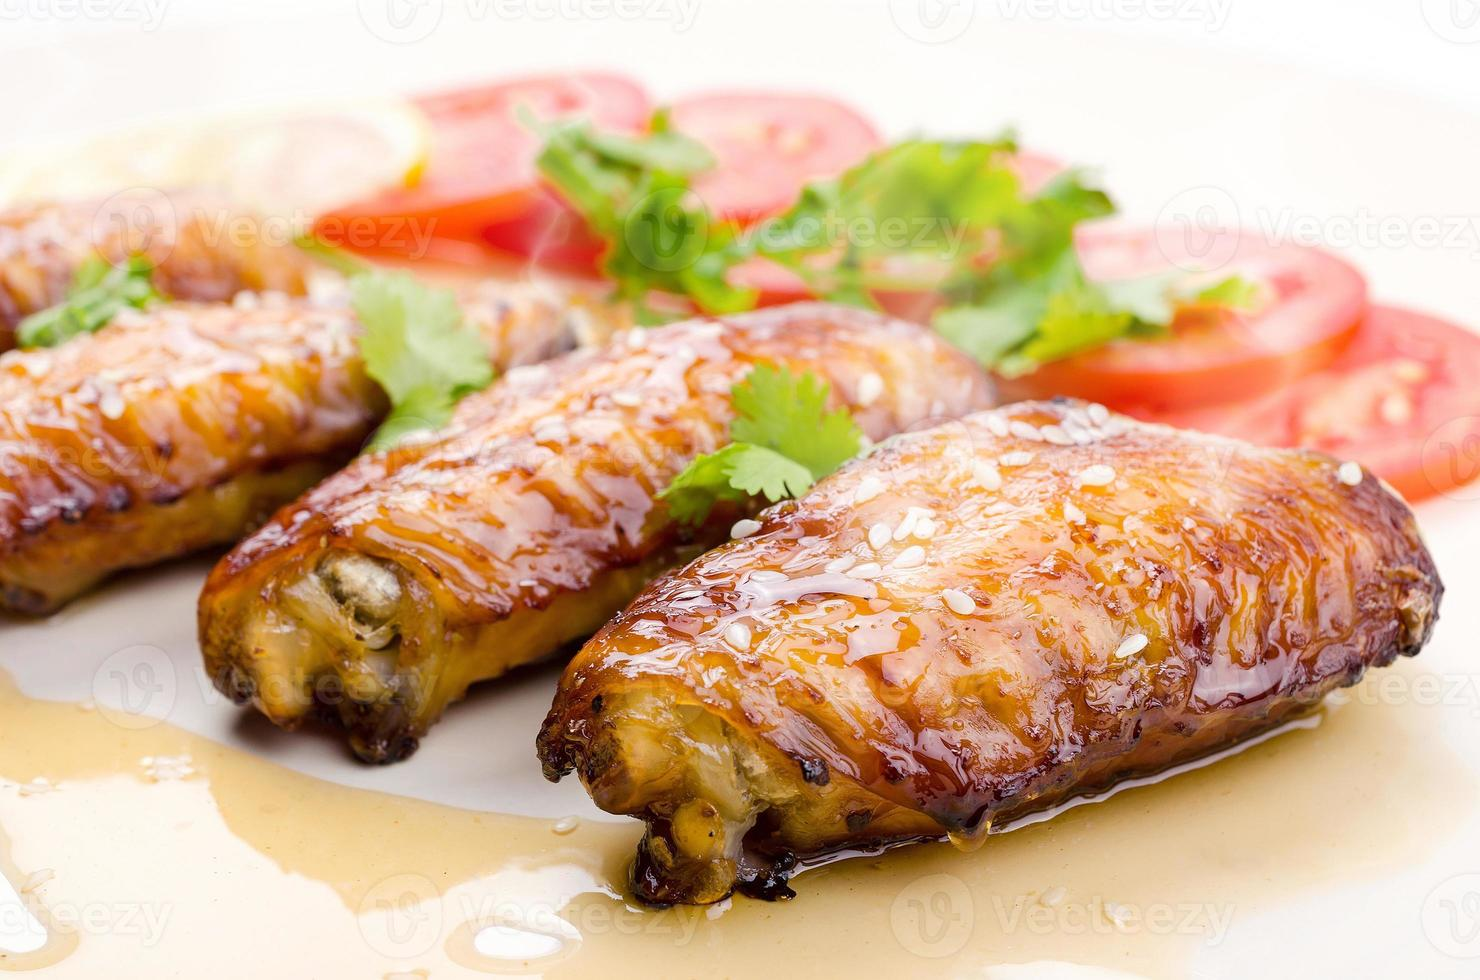 Grilled chicken wings and vegetables photo